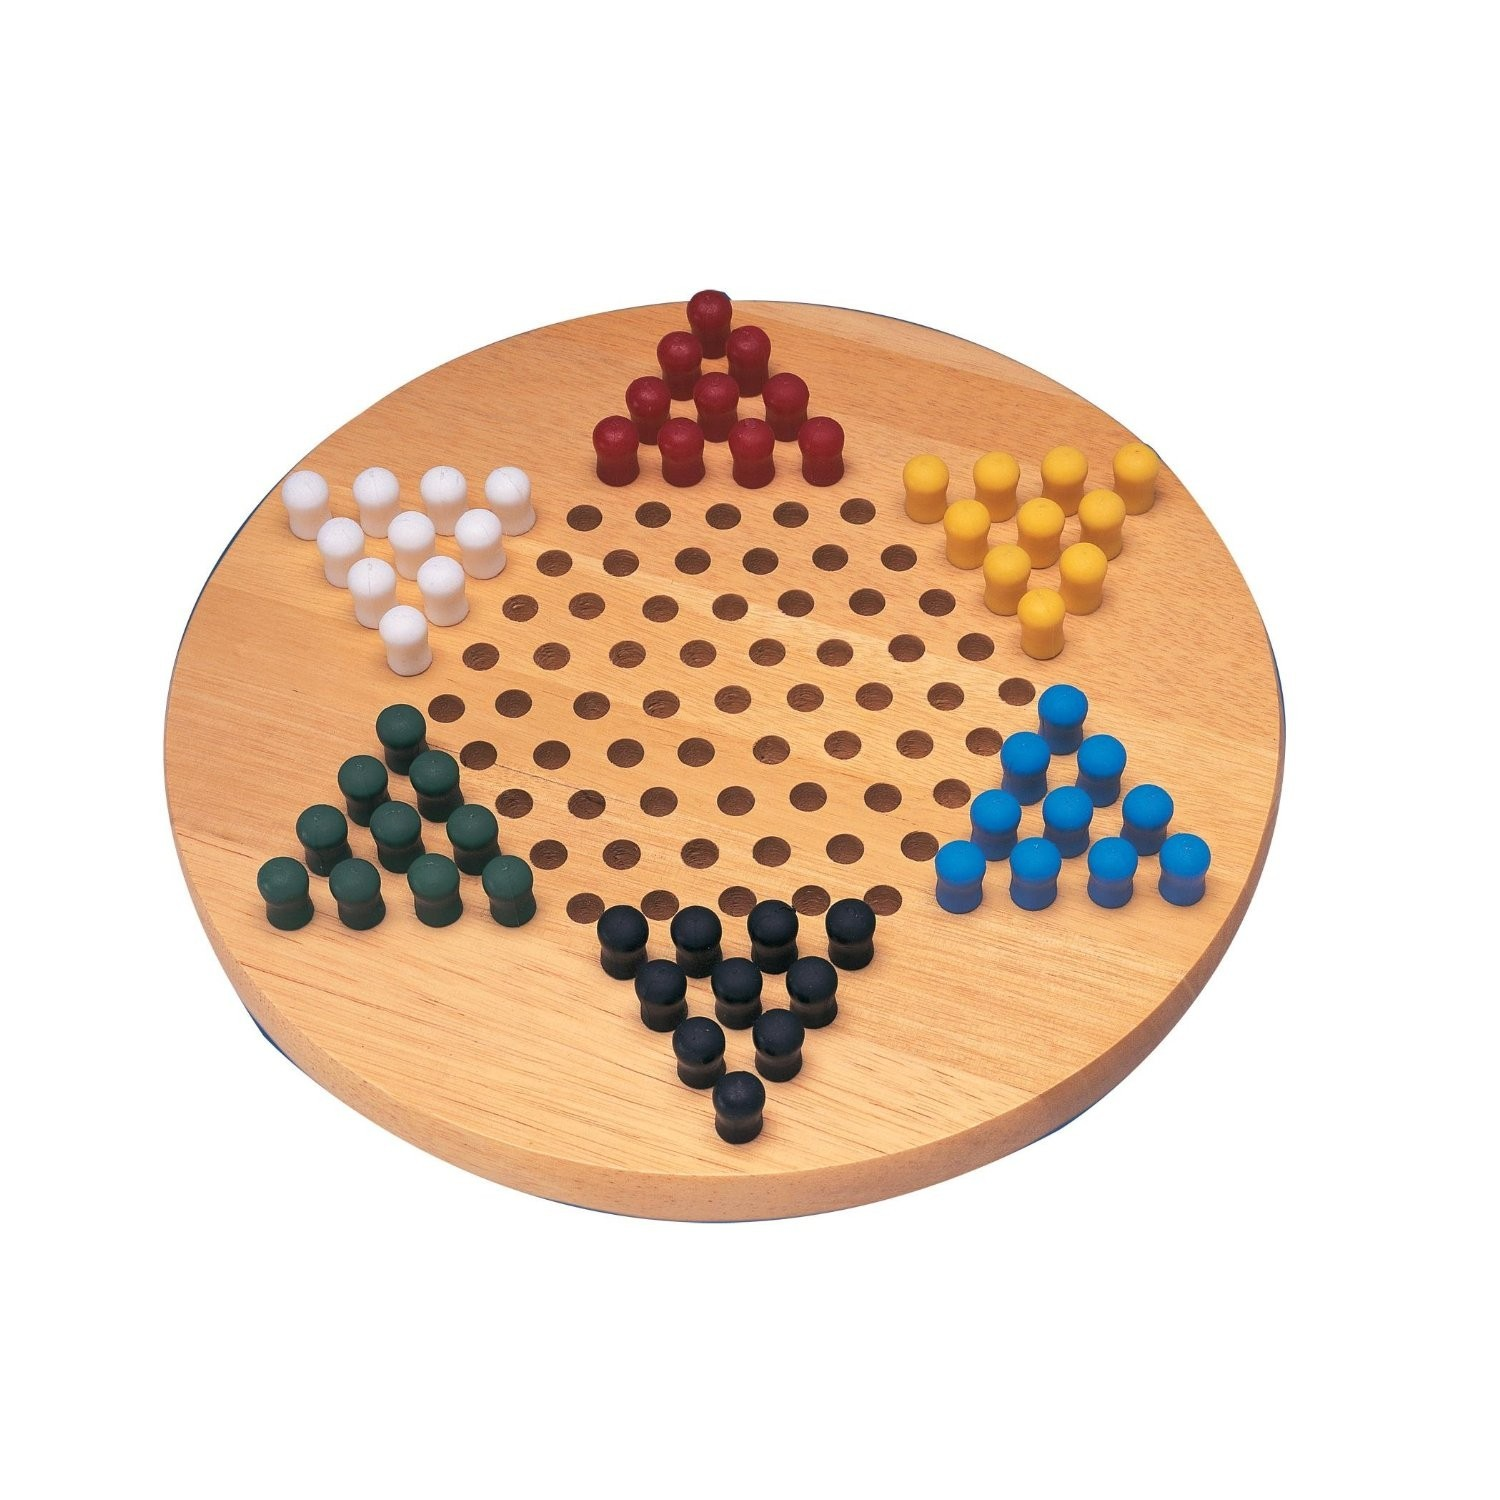 Chinese Checkers - Chinese Checkers with pegs